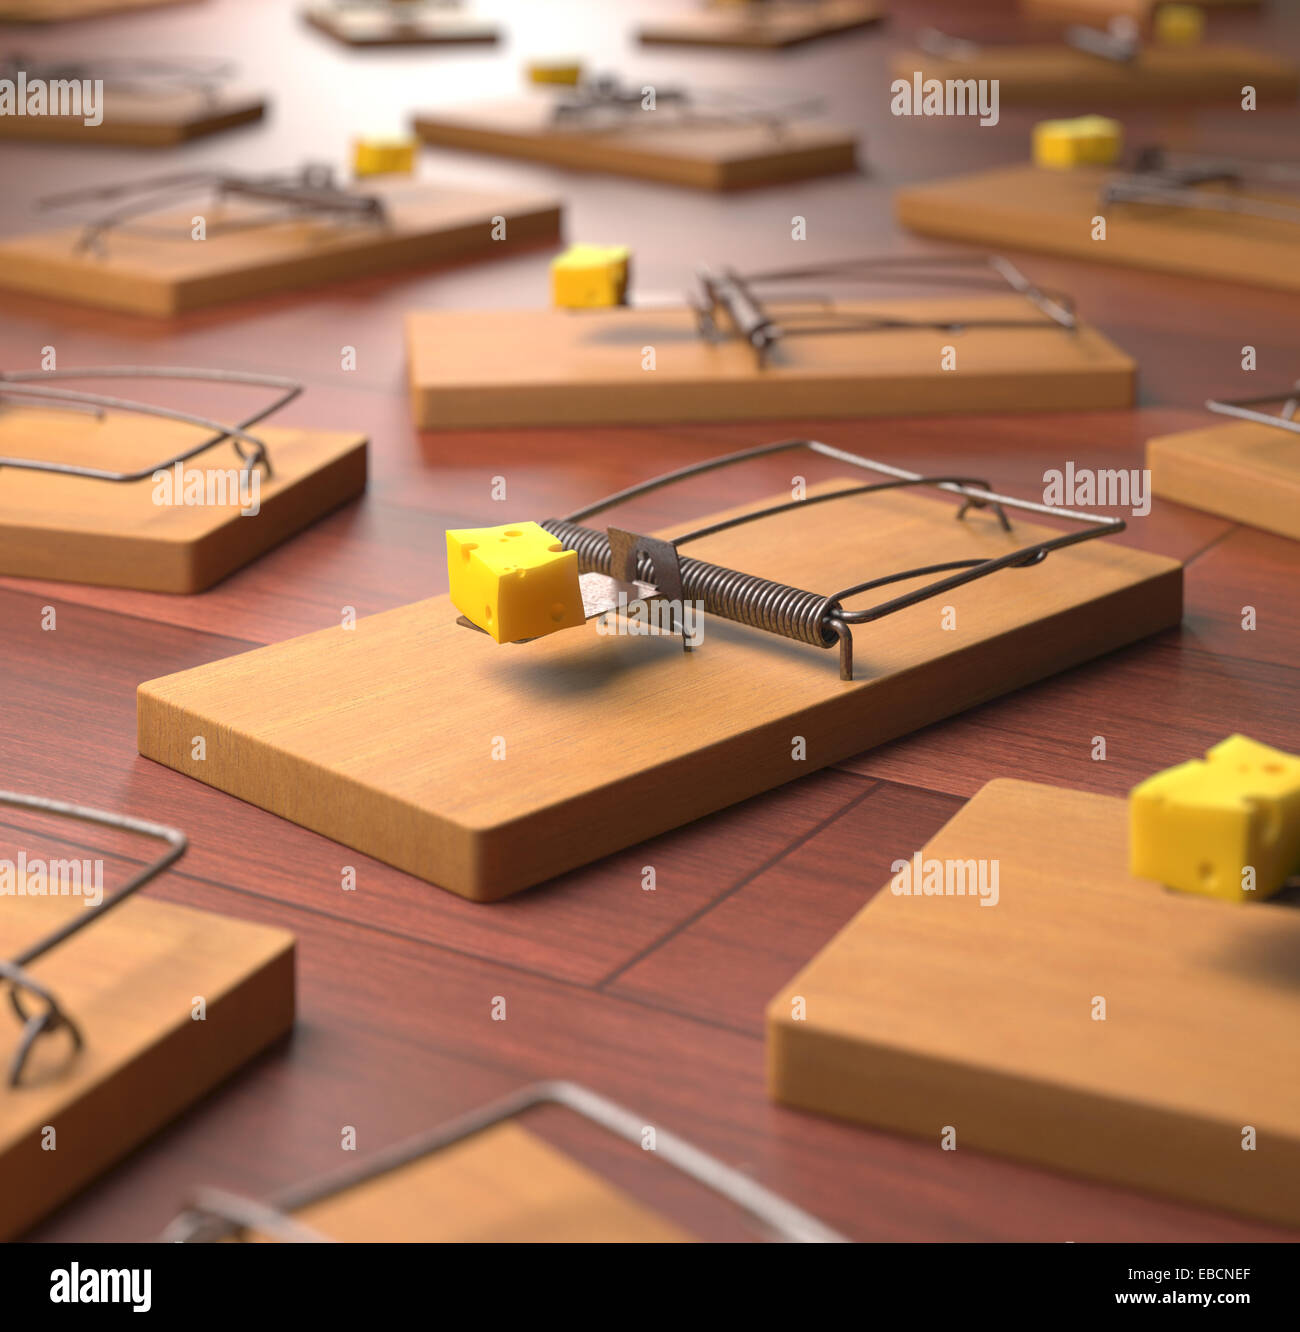 Several mousetrap with cheese on a wooden floor. Depth of field in cheese. - Stock Image